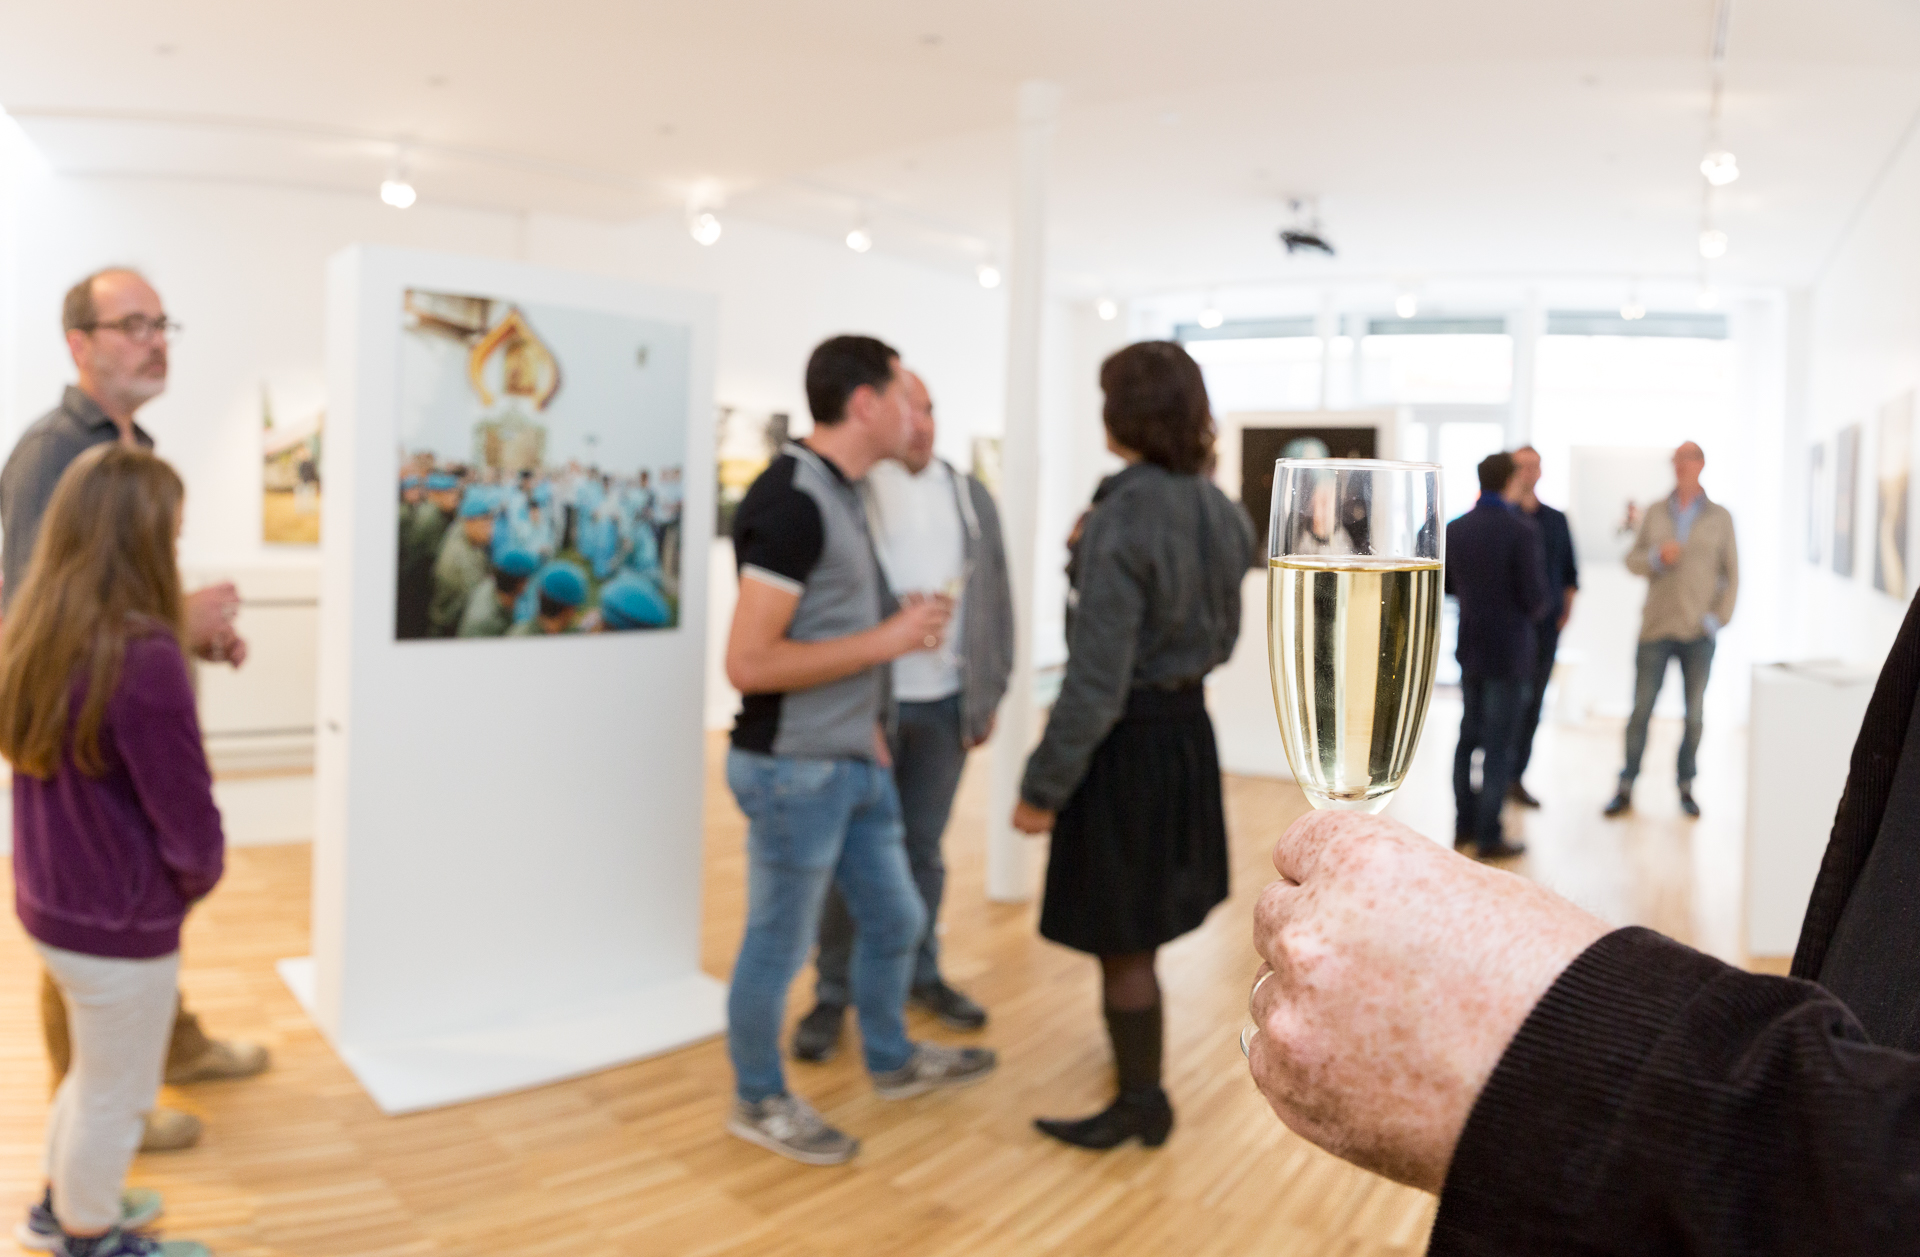 vernissage-_94B7748-Panorama